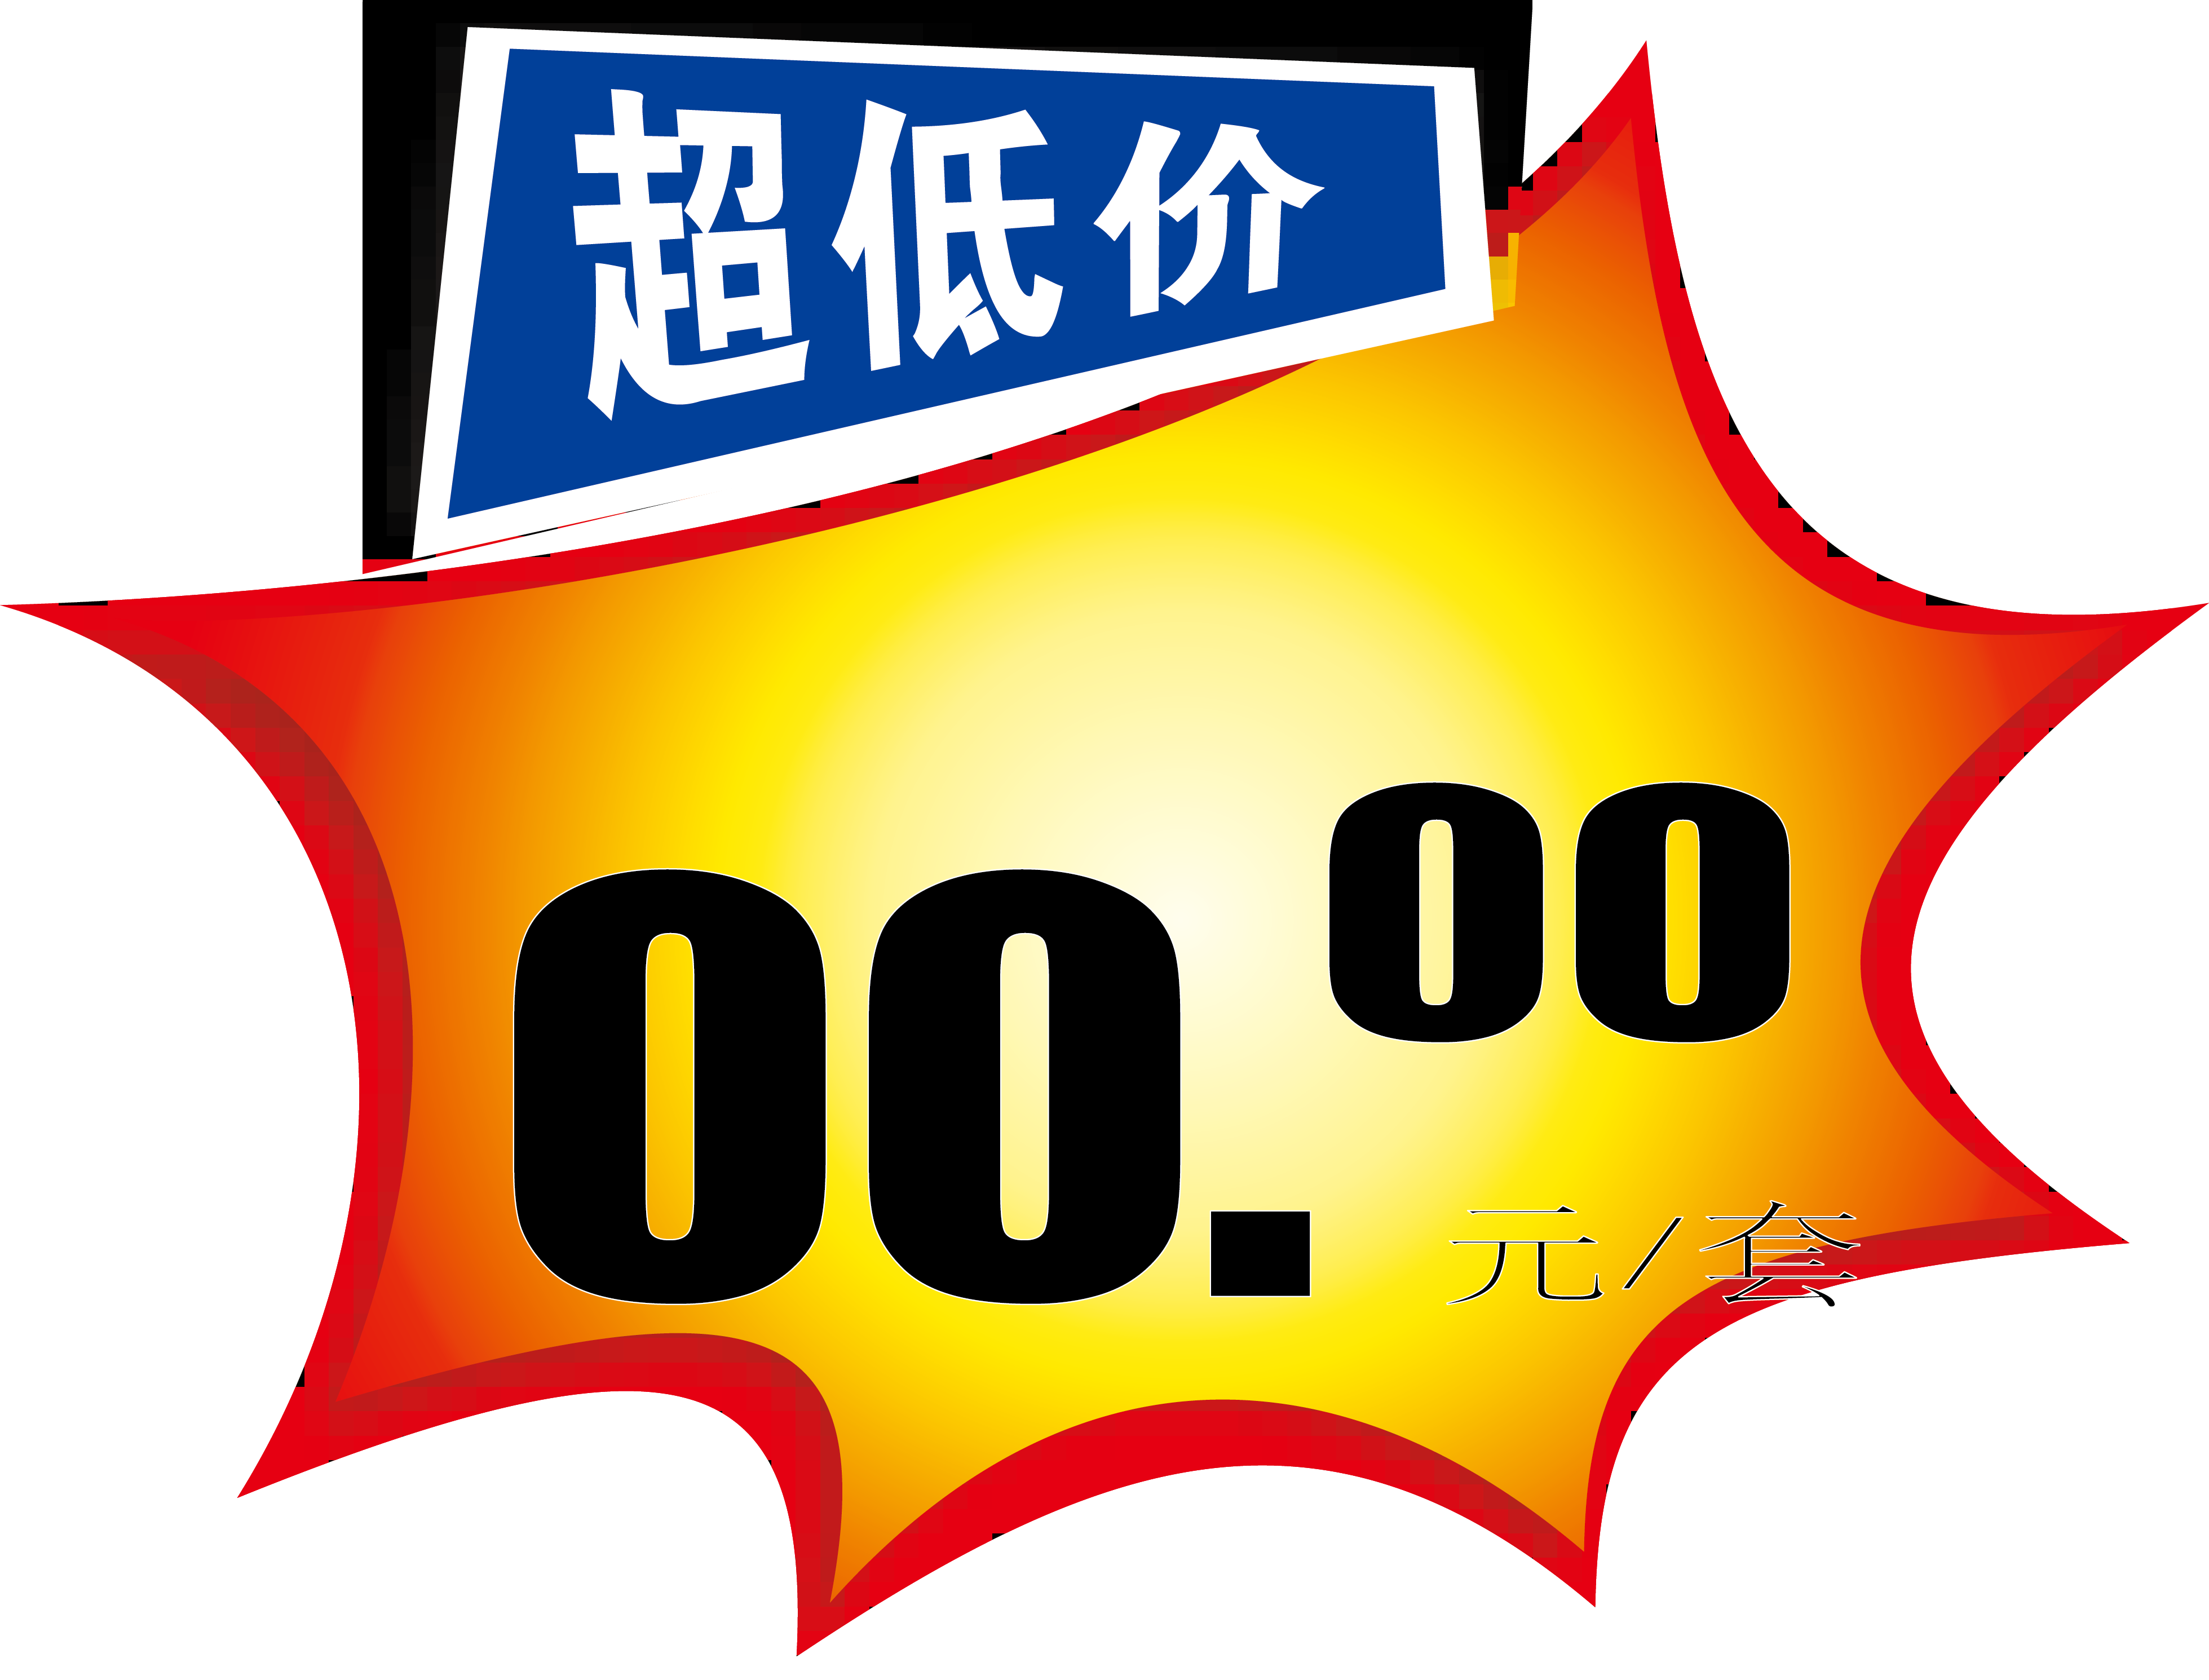 Ultra low vector transprent. Clipart explosion price tag